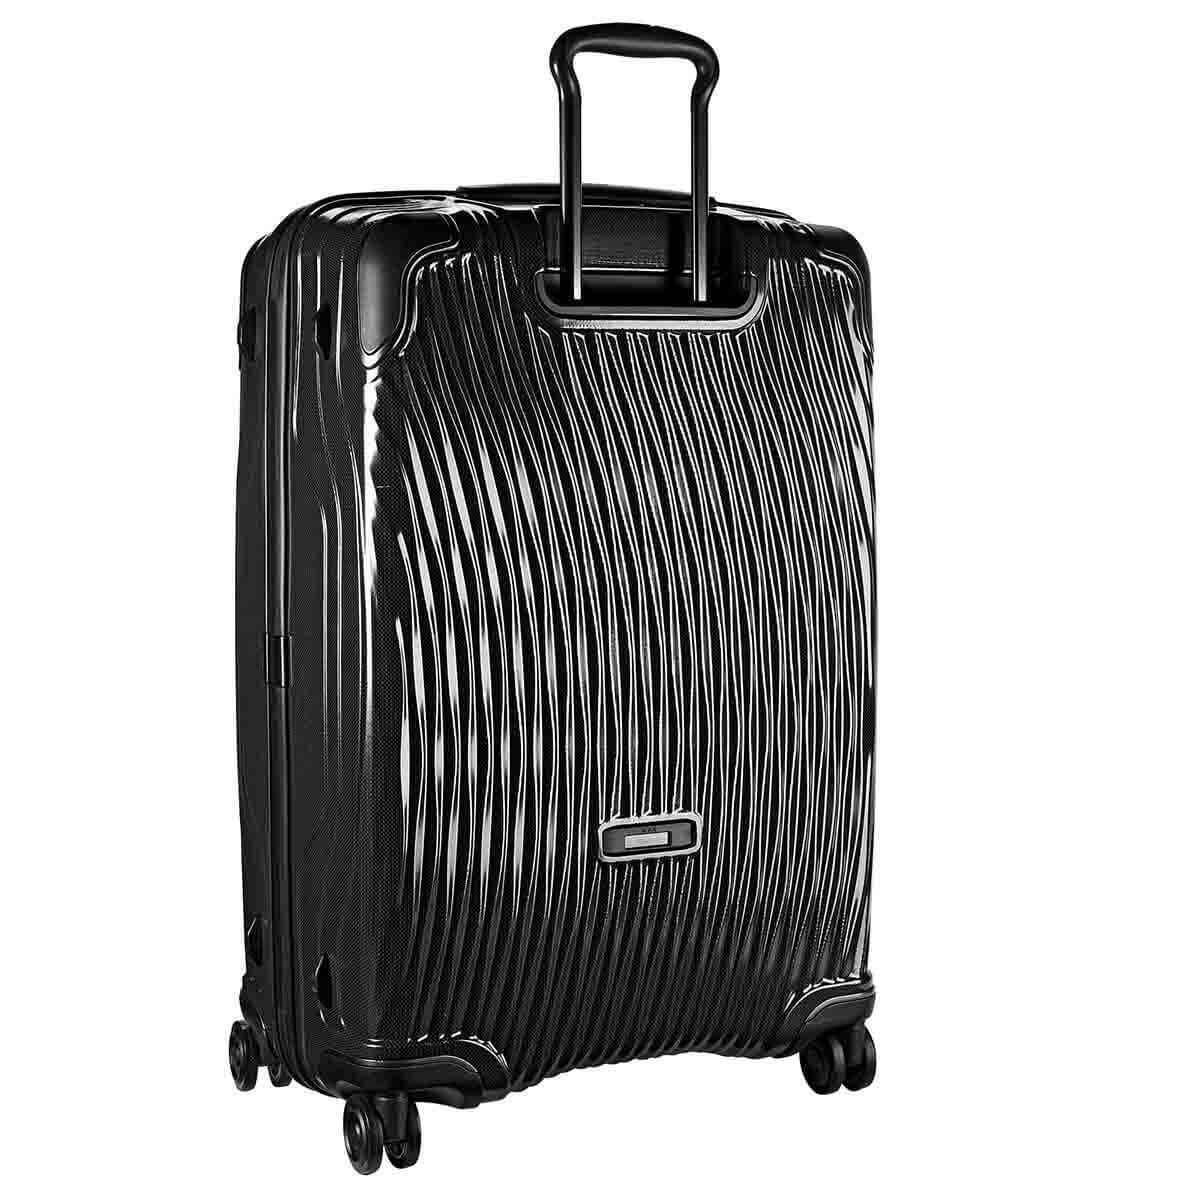 a8e2f9a8c53 Designer Luggage, Suitcases & Weekend Bags - Harvey Nichols